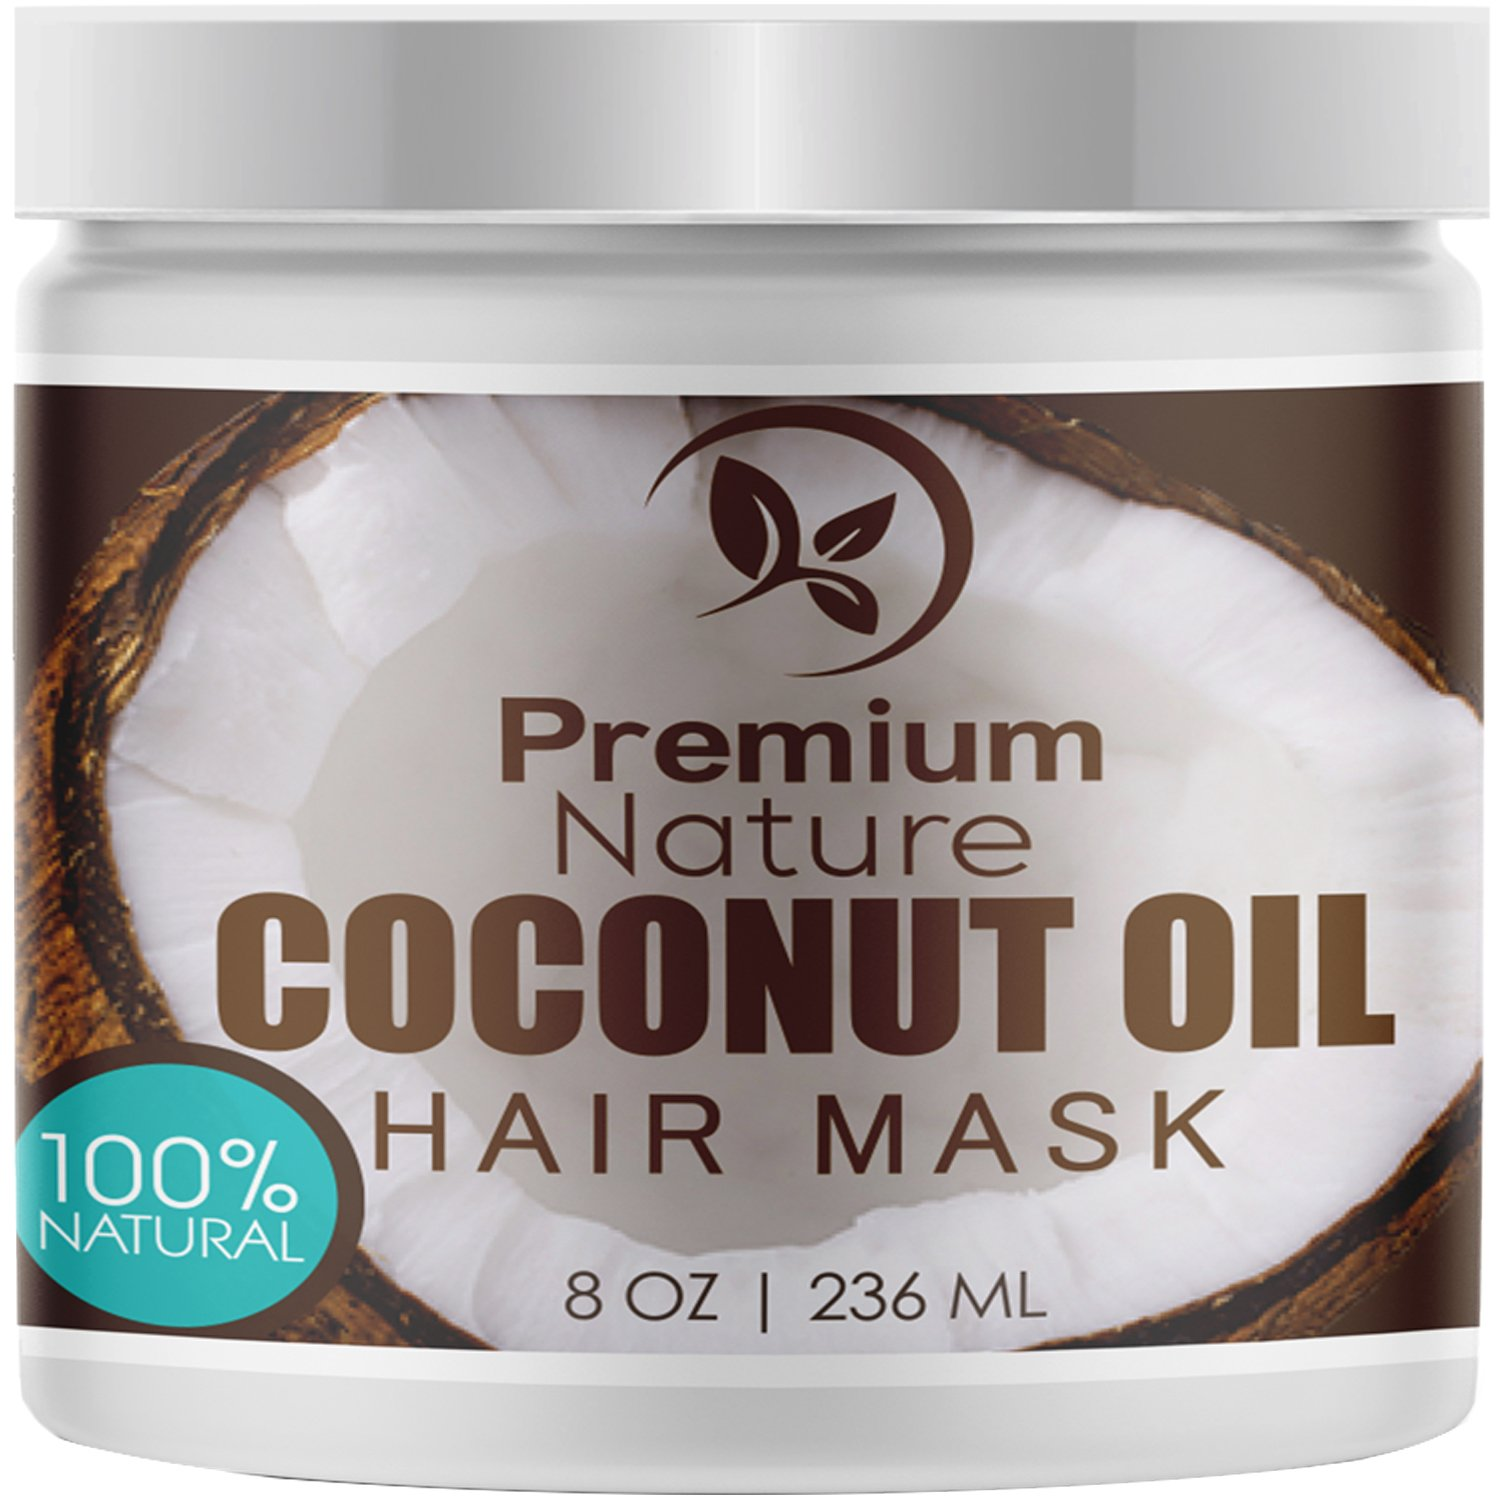 Coconut Oil Hair Mask Conditioner - Deep Conditioning Leave In Hair Treatment for Dry Damaged Hair Care 100% Natural Moisturizes Repair Restores Hydrates & Nourishes Scalp Sulfate Free Growth Masks Premium Nature